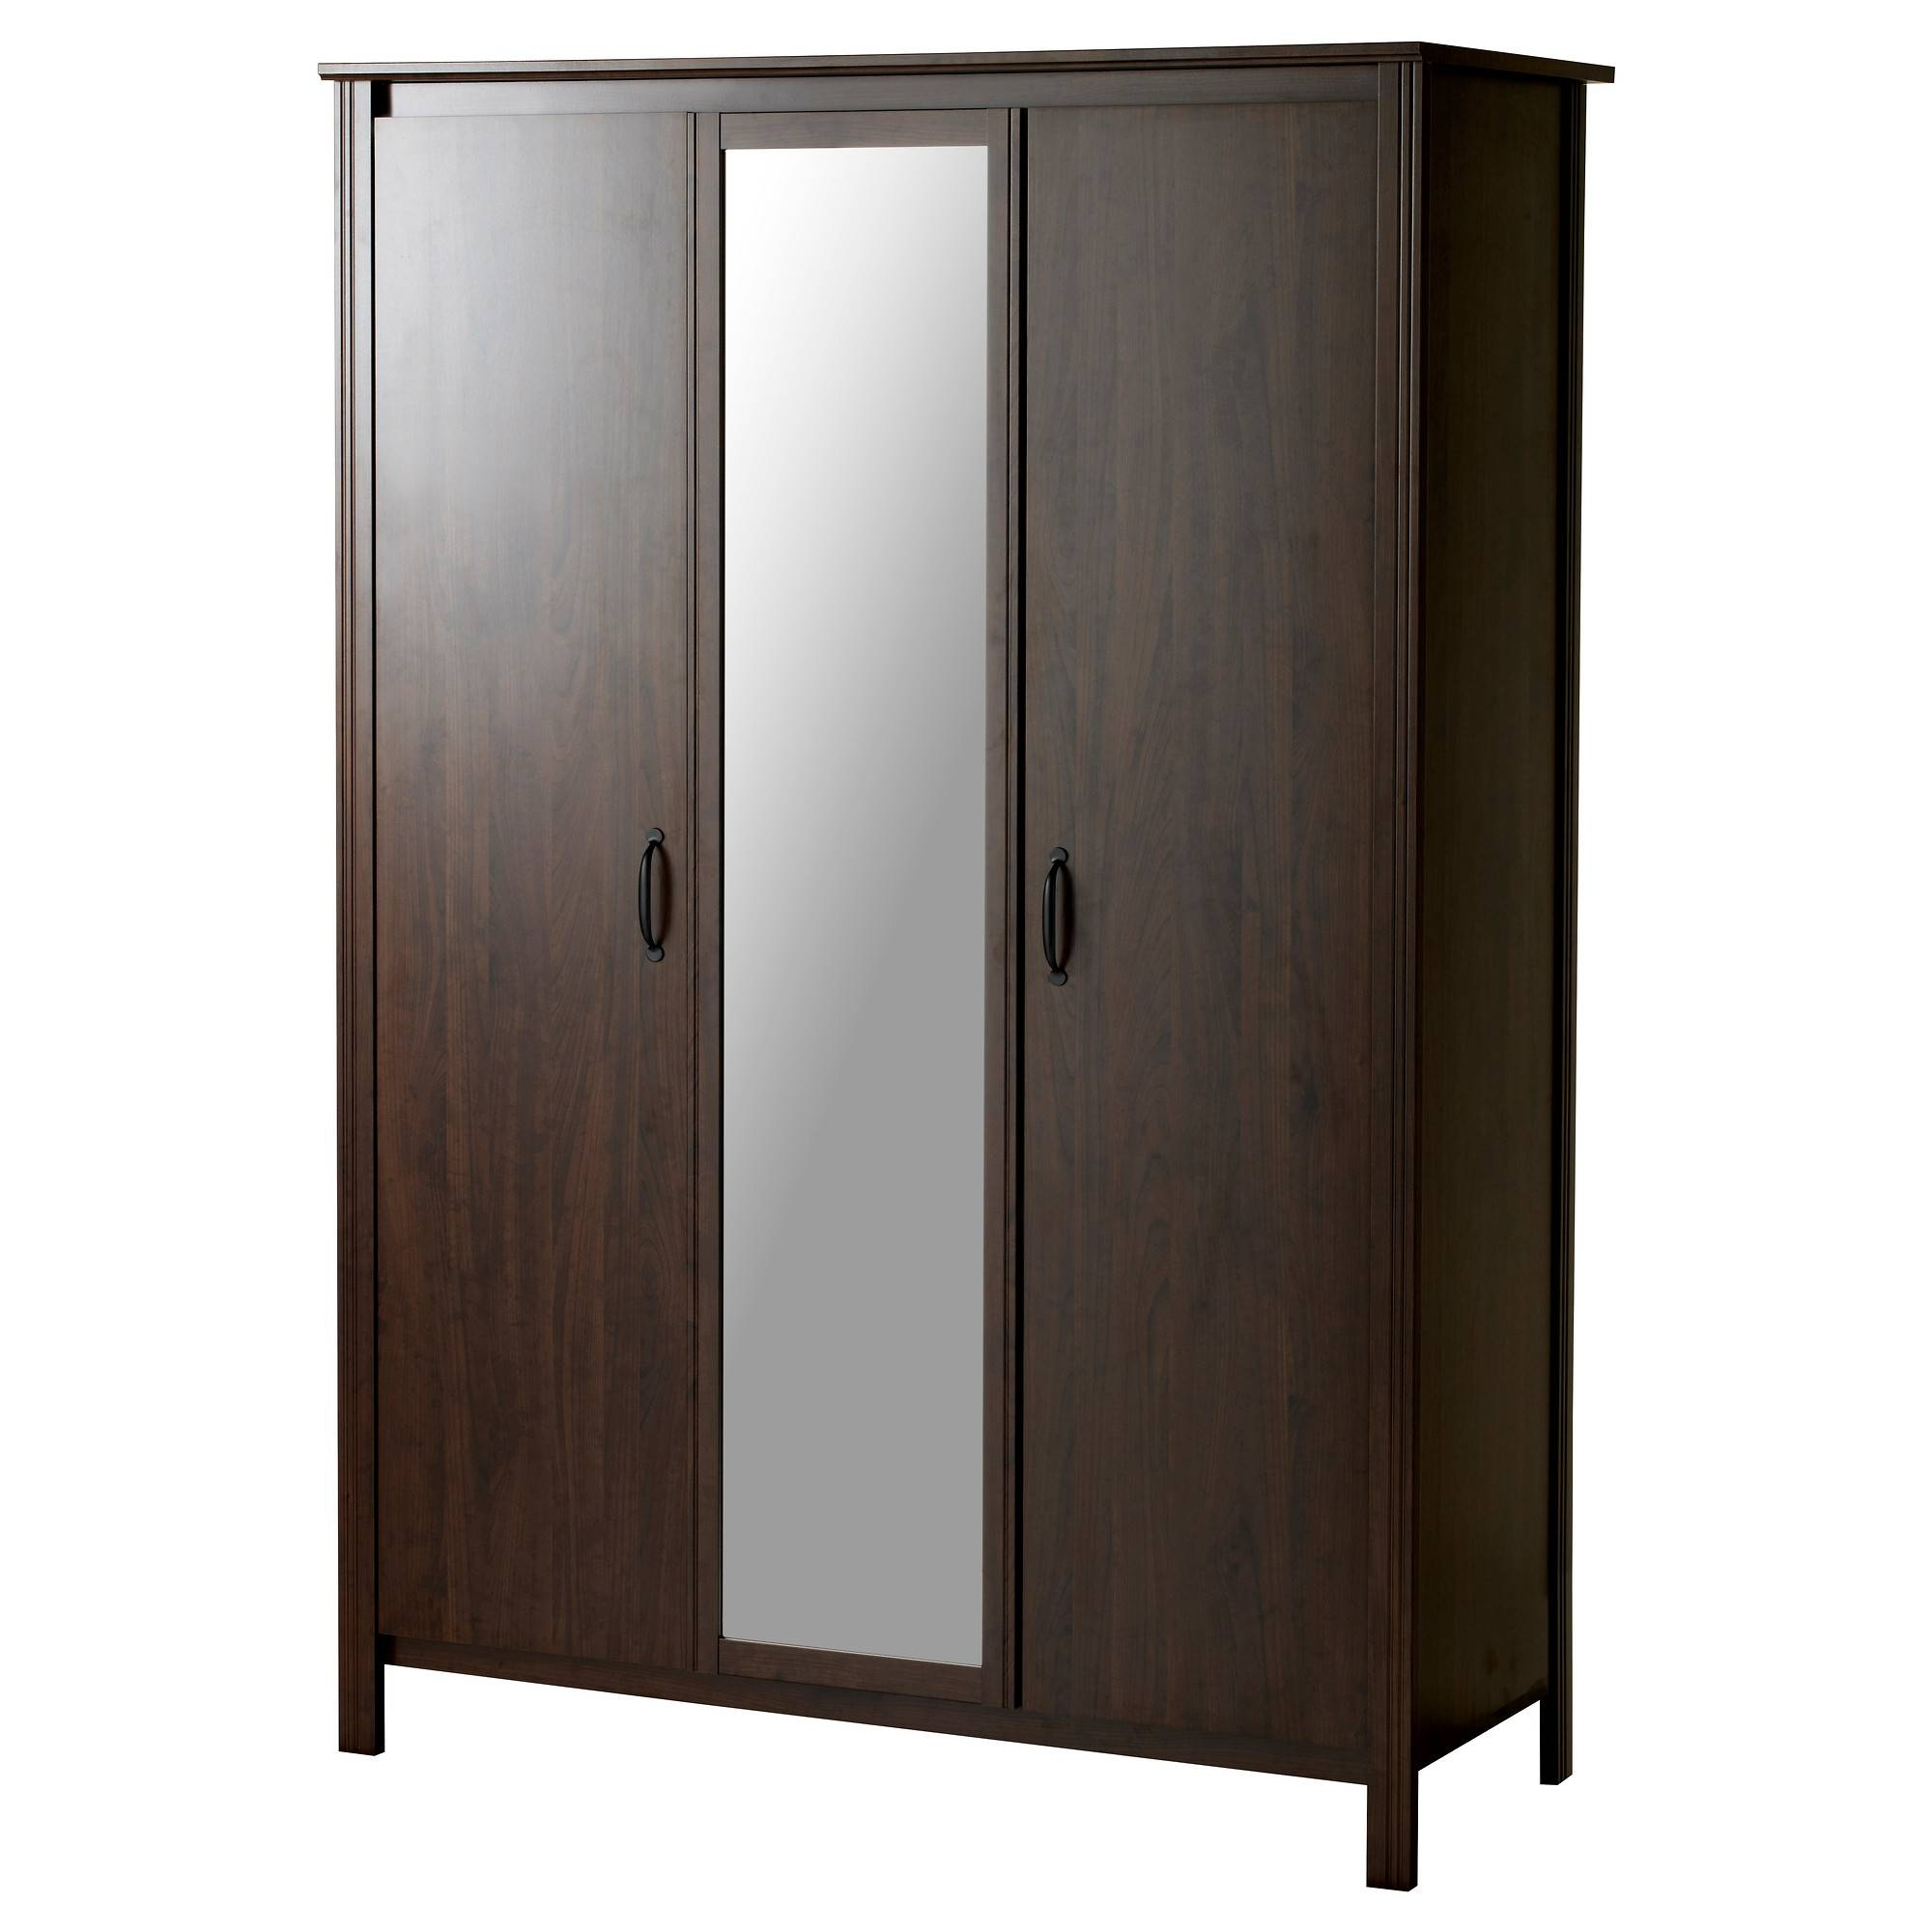 Brusali Wardrobe With 3 Doors - Ikea throughout Dark Wood Wardrobe Closet (Image 10 of 30)